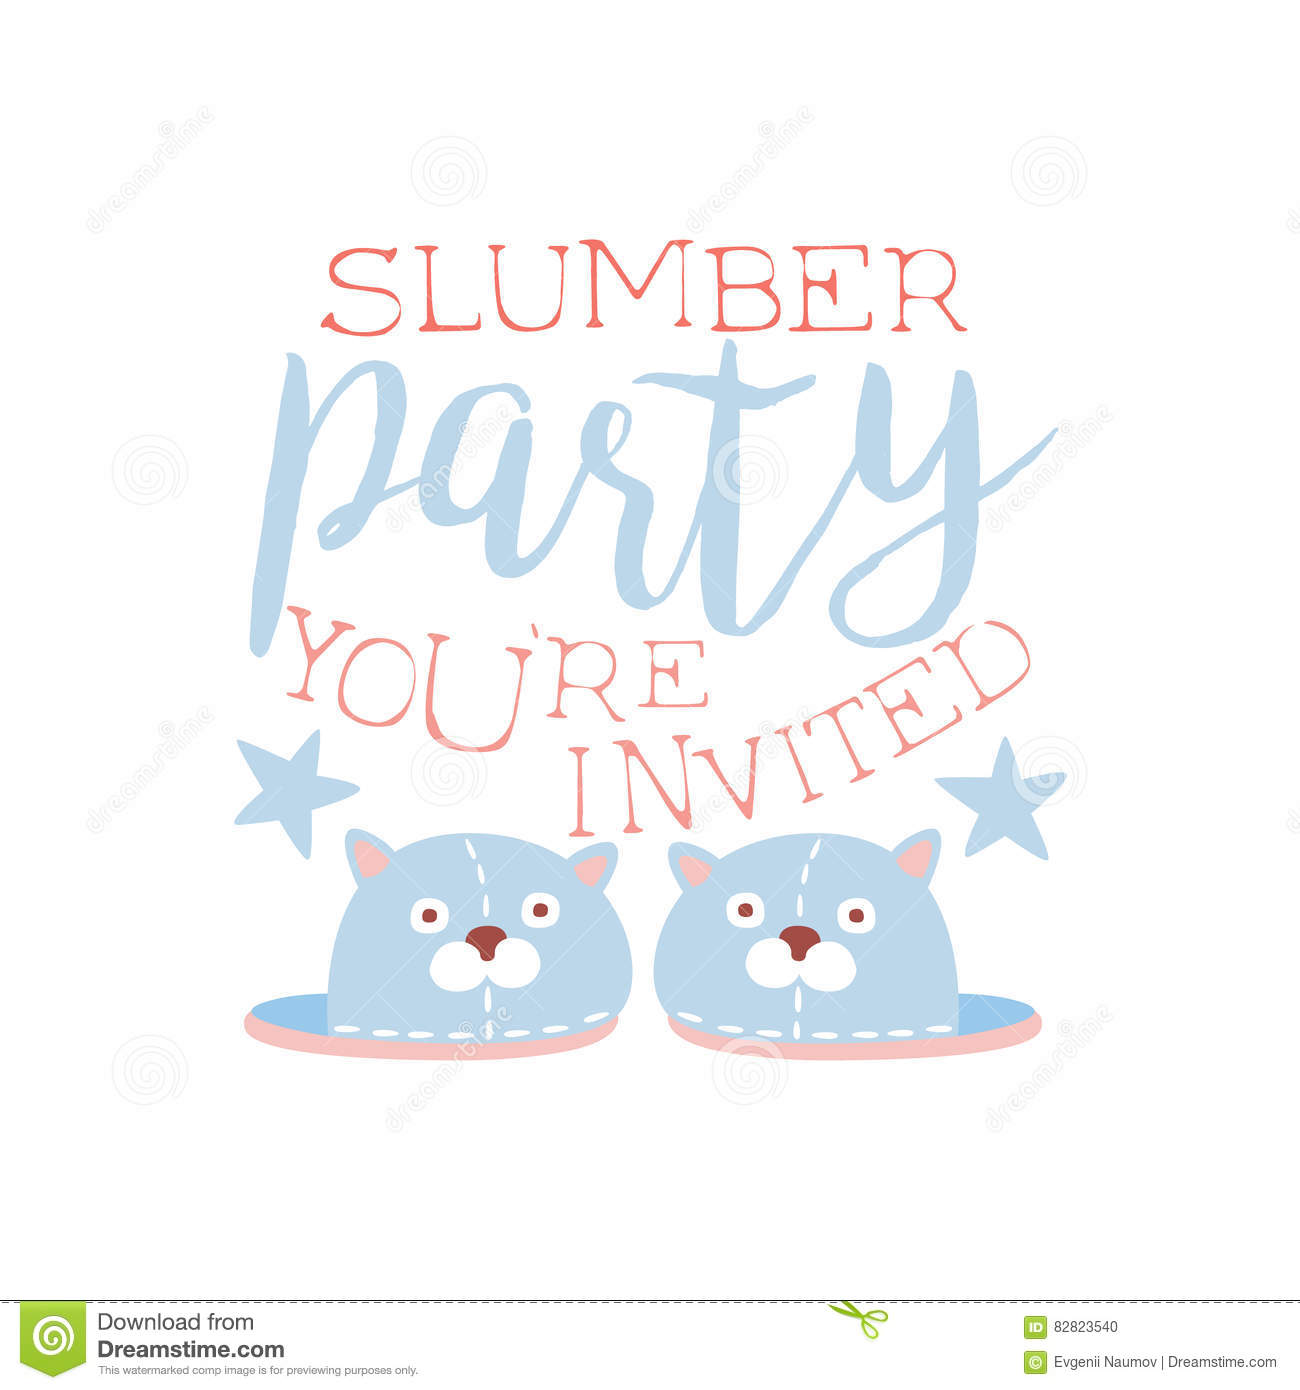 girly pajama party invitation card template with pair of slippers